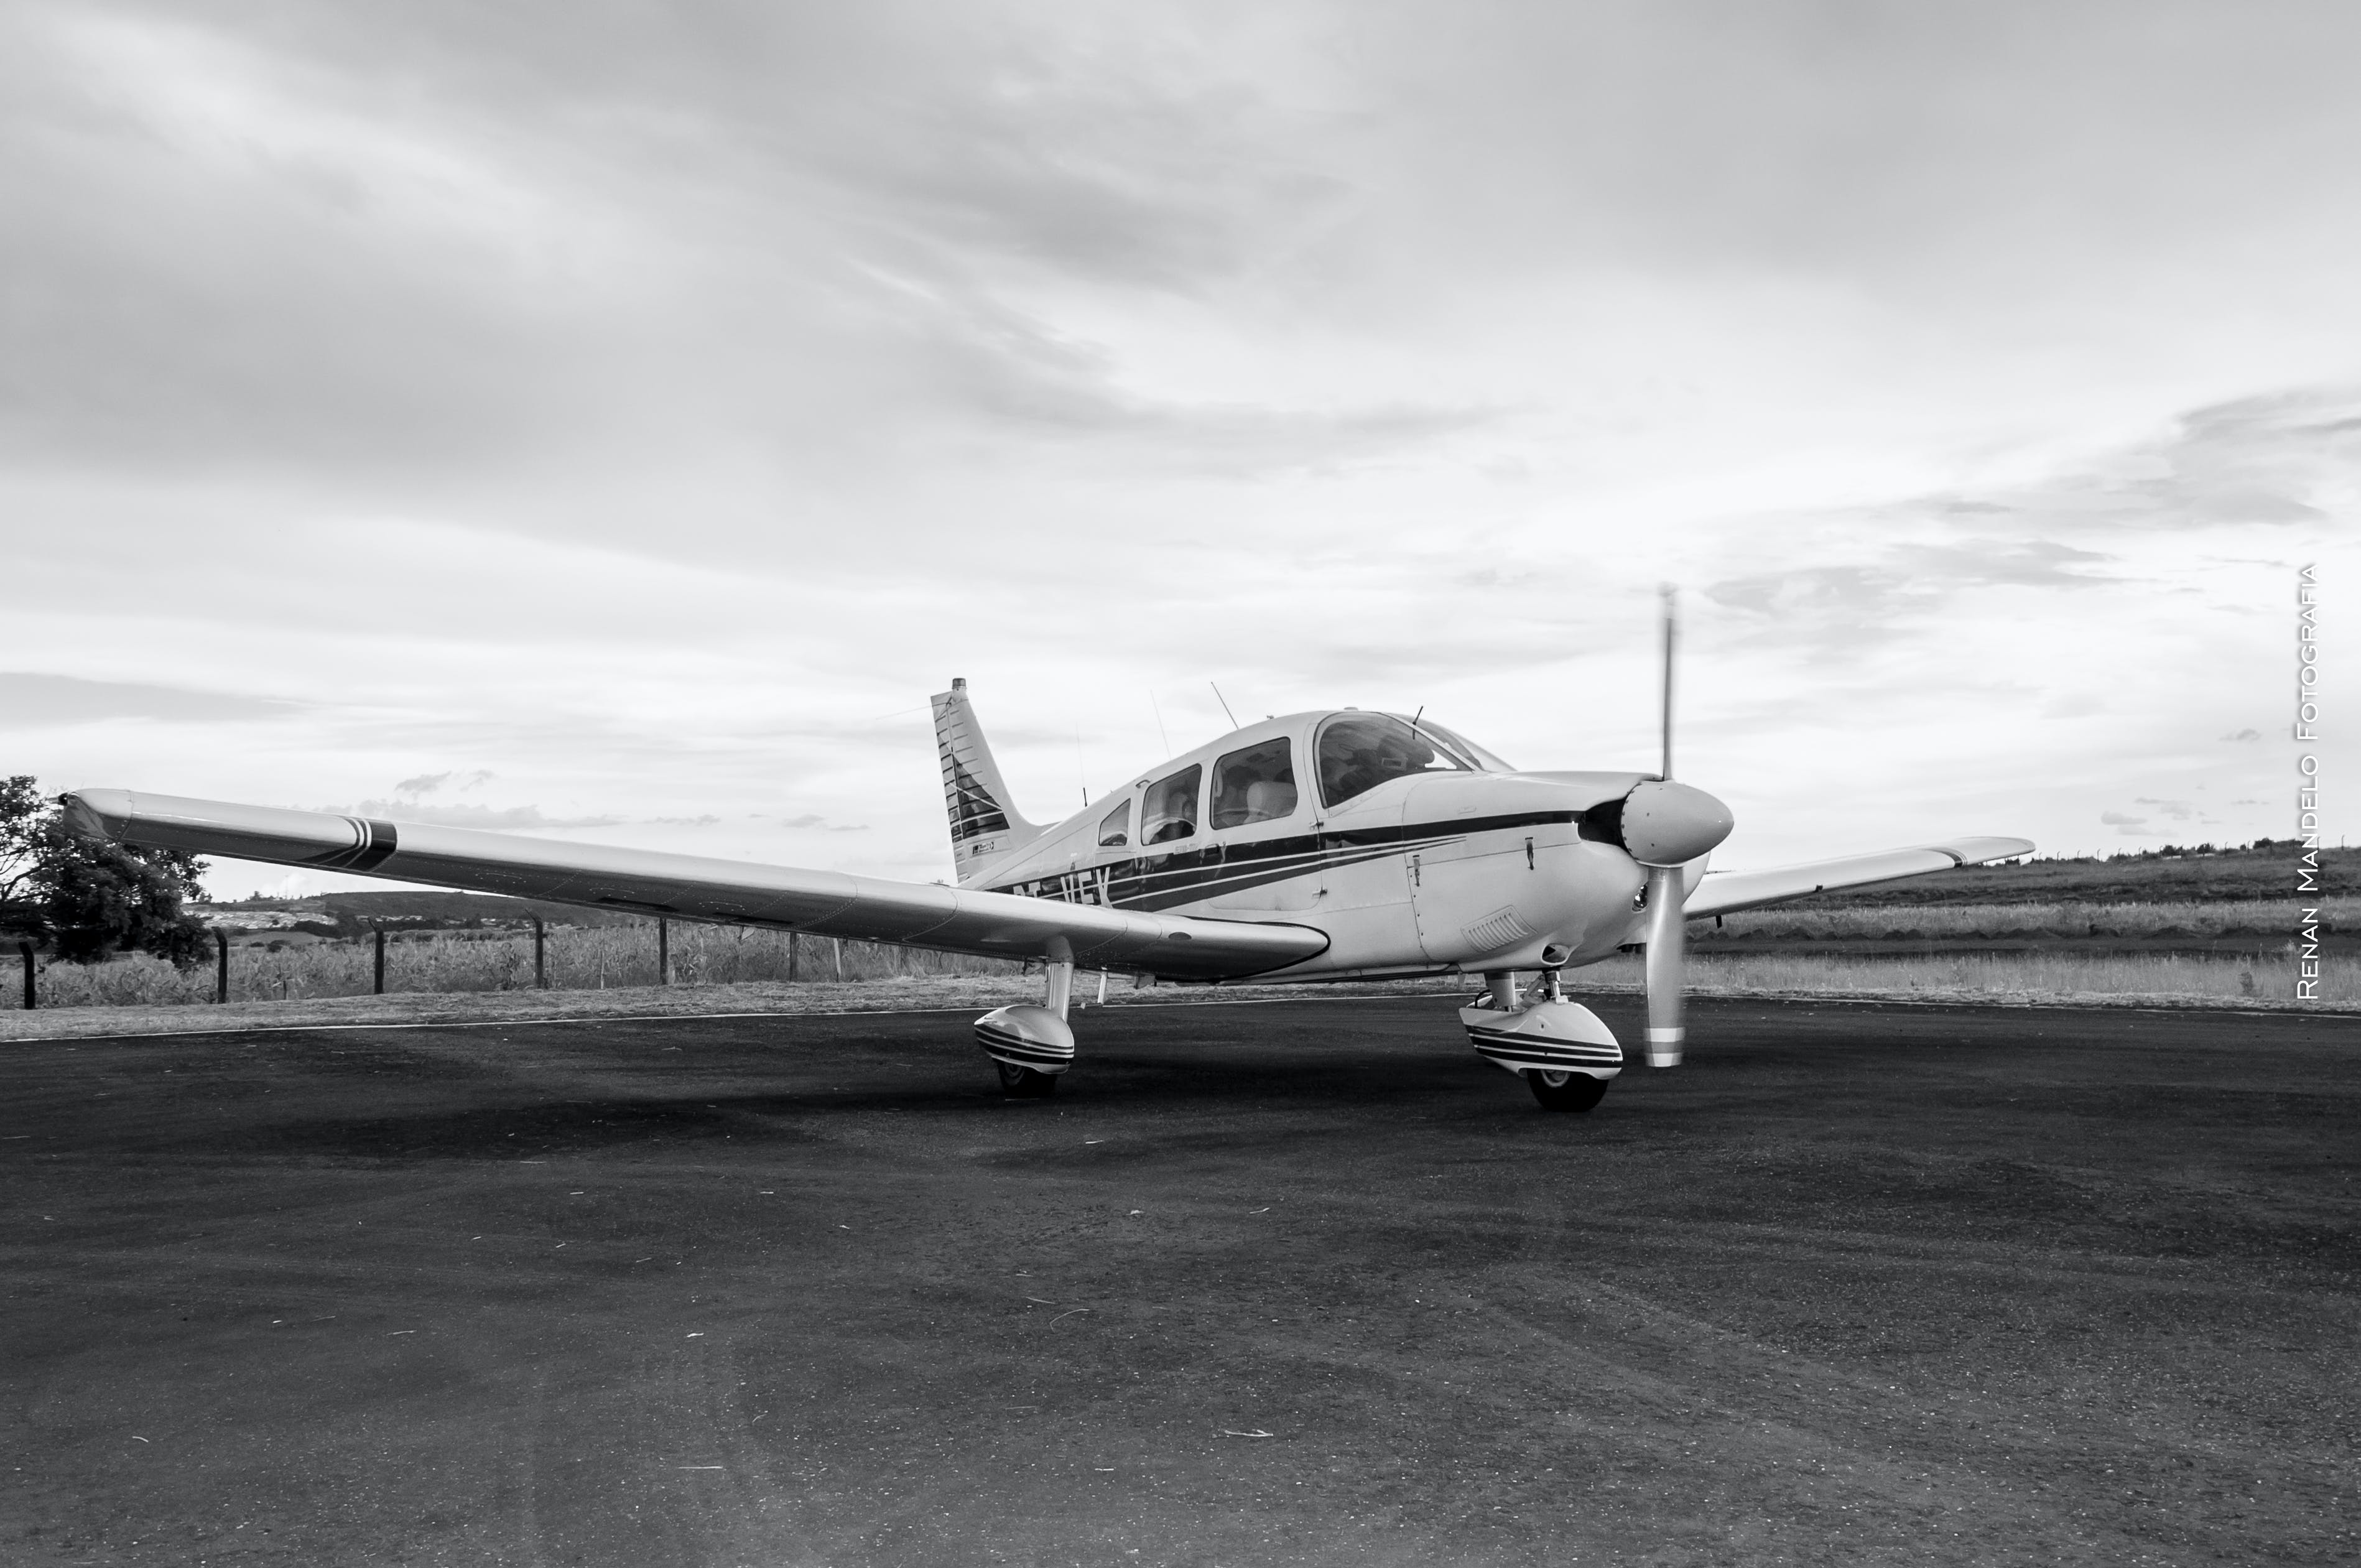 Free stock photo of aircraft, airplane, black and white